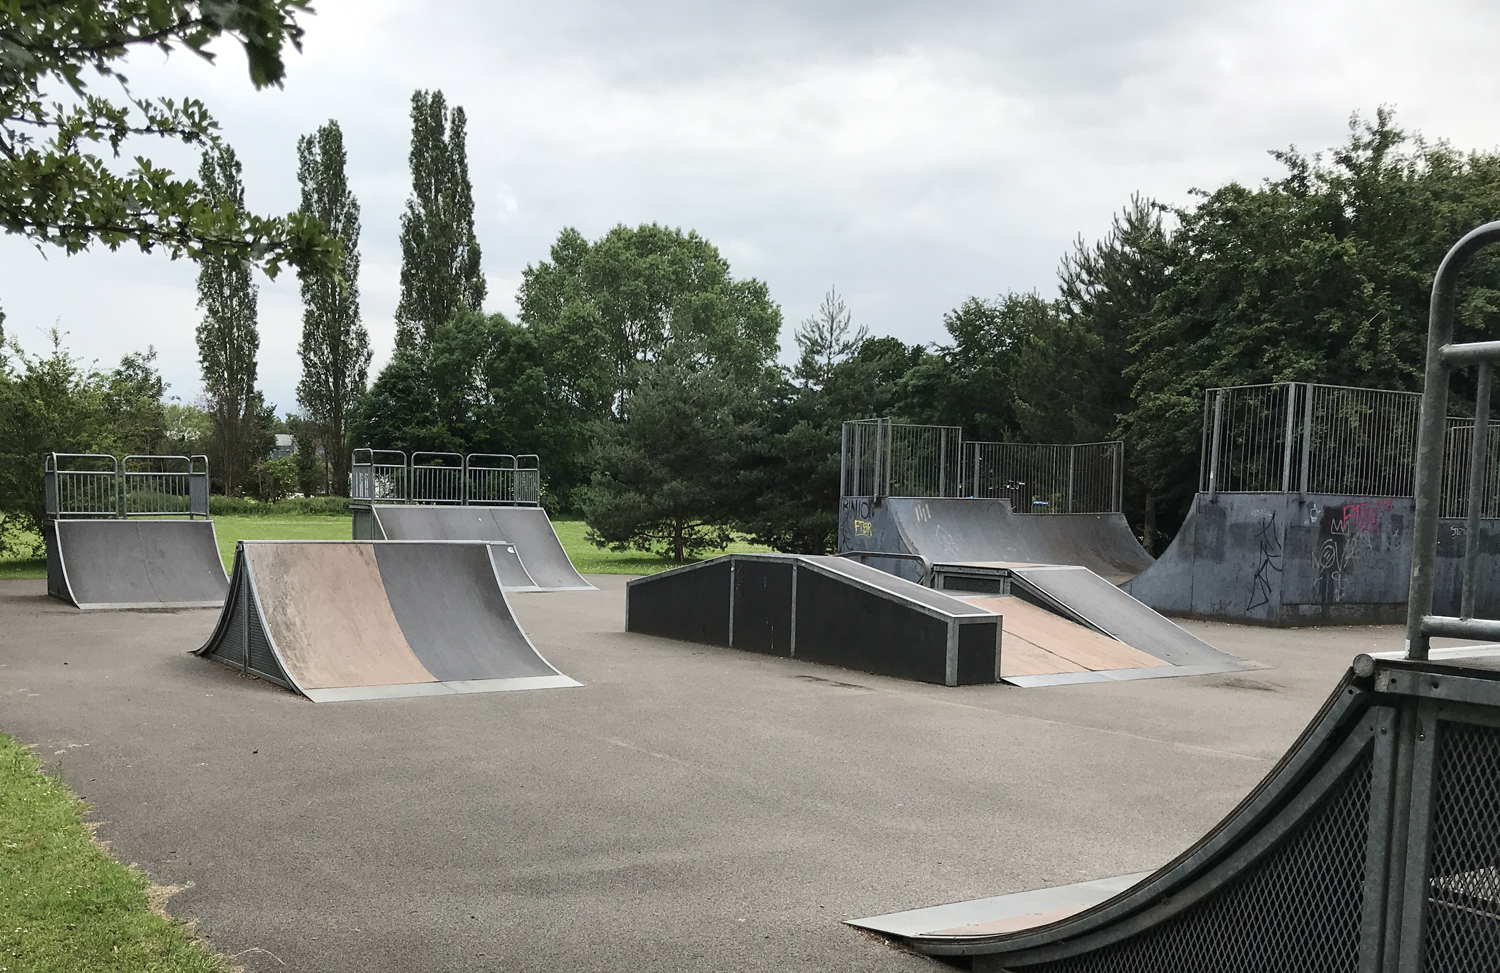 Skate Park Facilities Design Choices Revealed